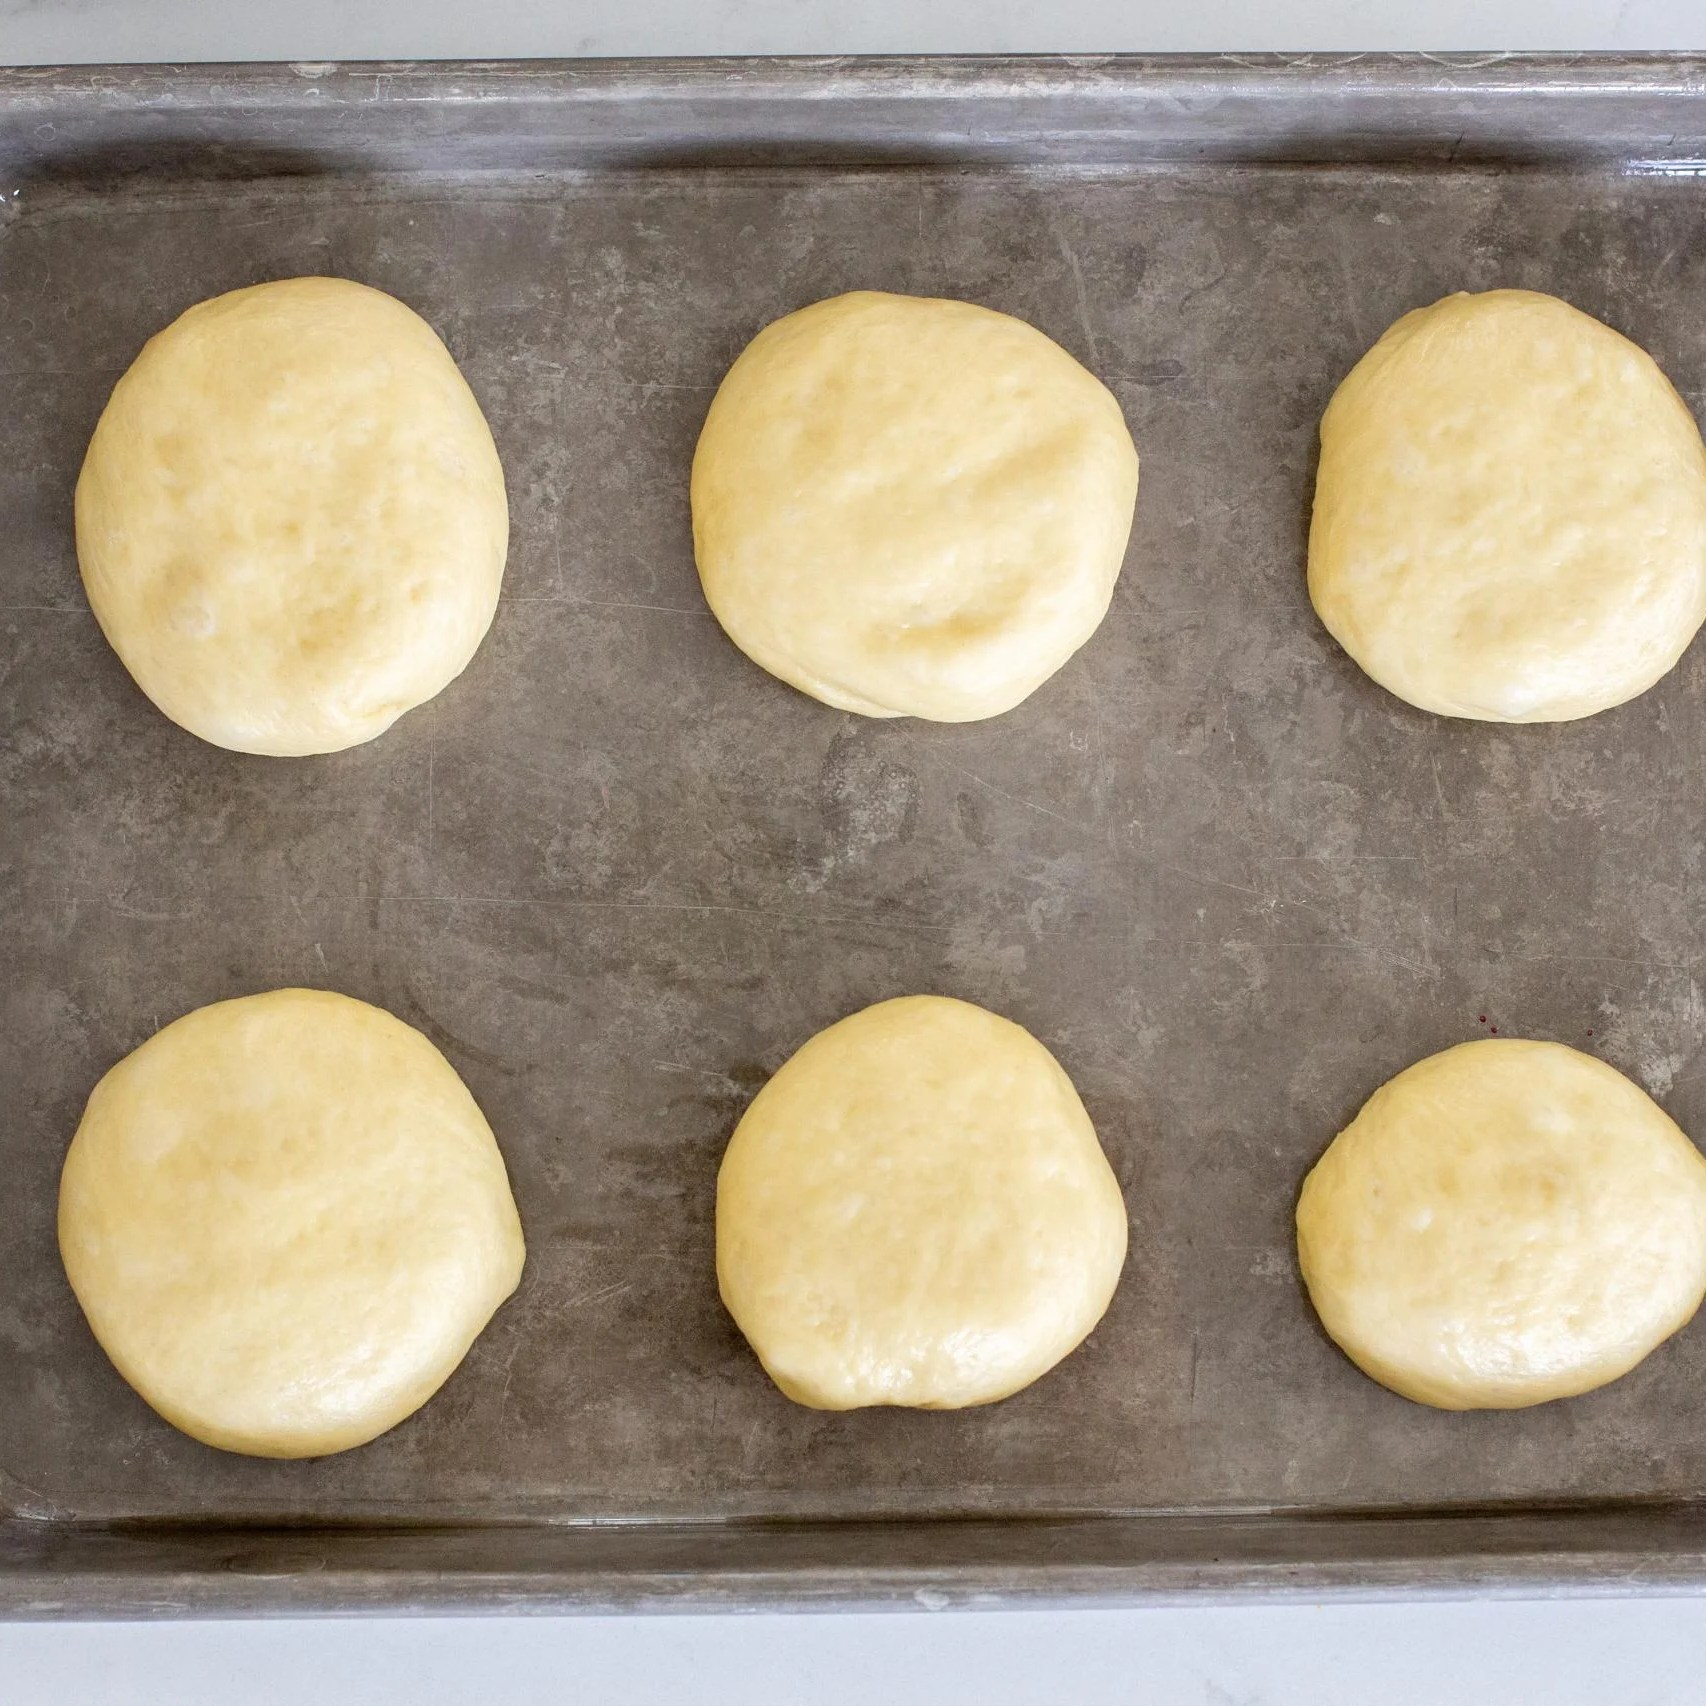 Brioche Buns on a baking sheet